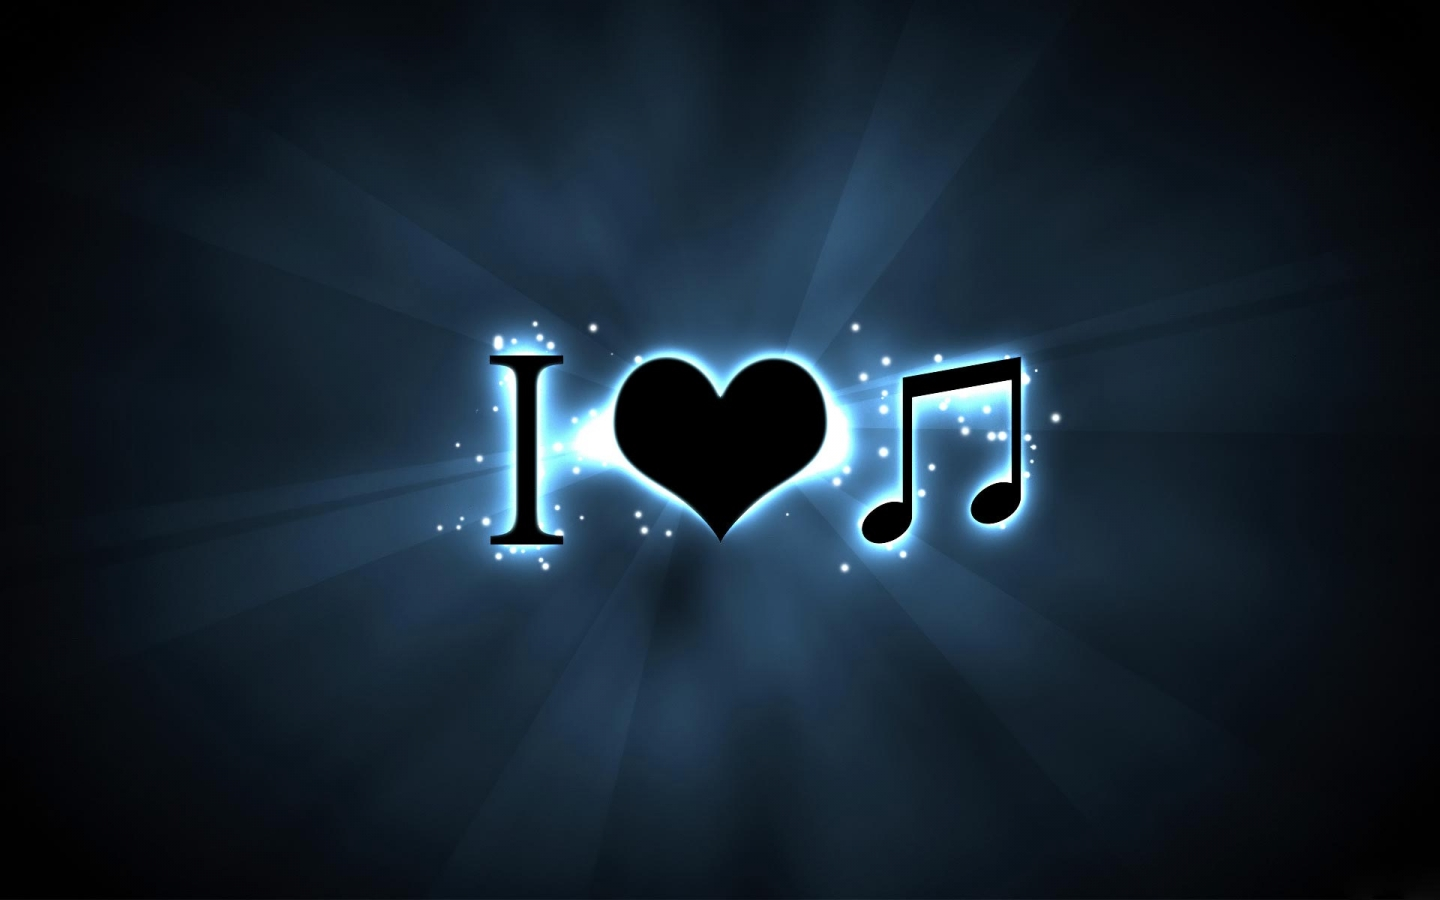 Papel de Parede I Love Music Wallpaper para Download no Celular ou 1440x900